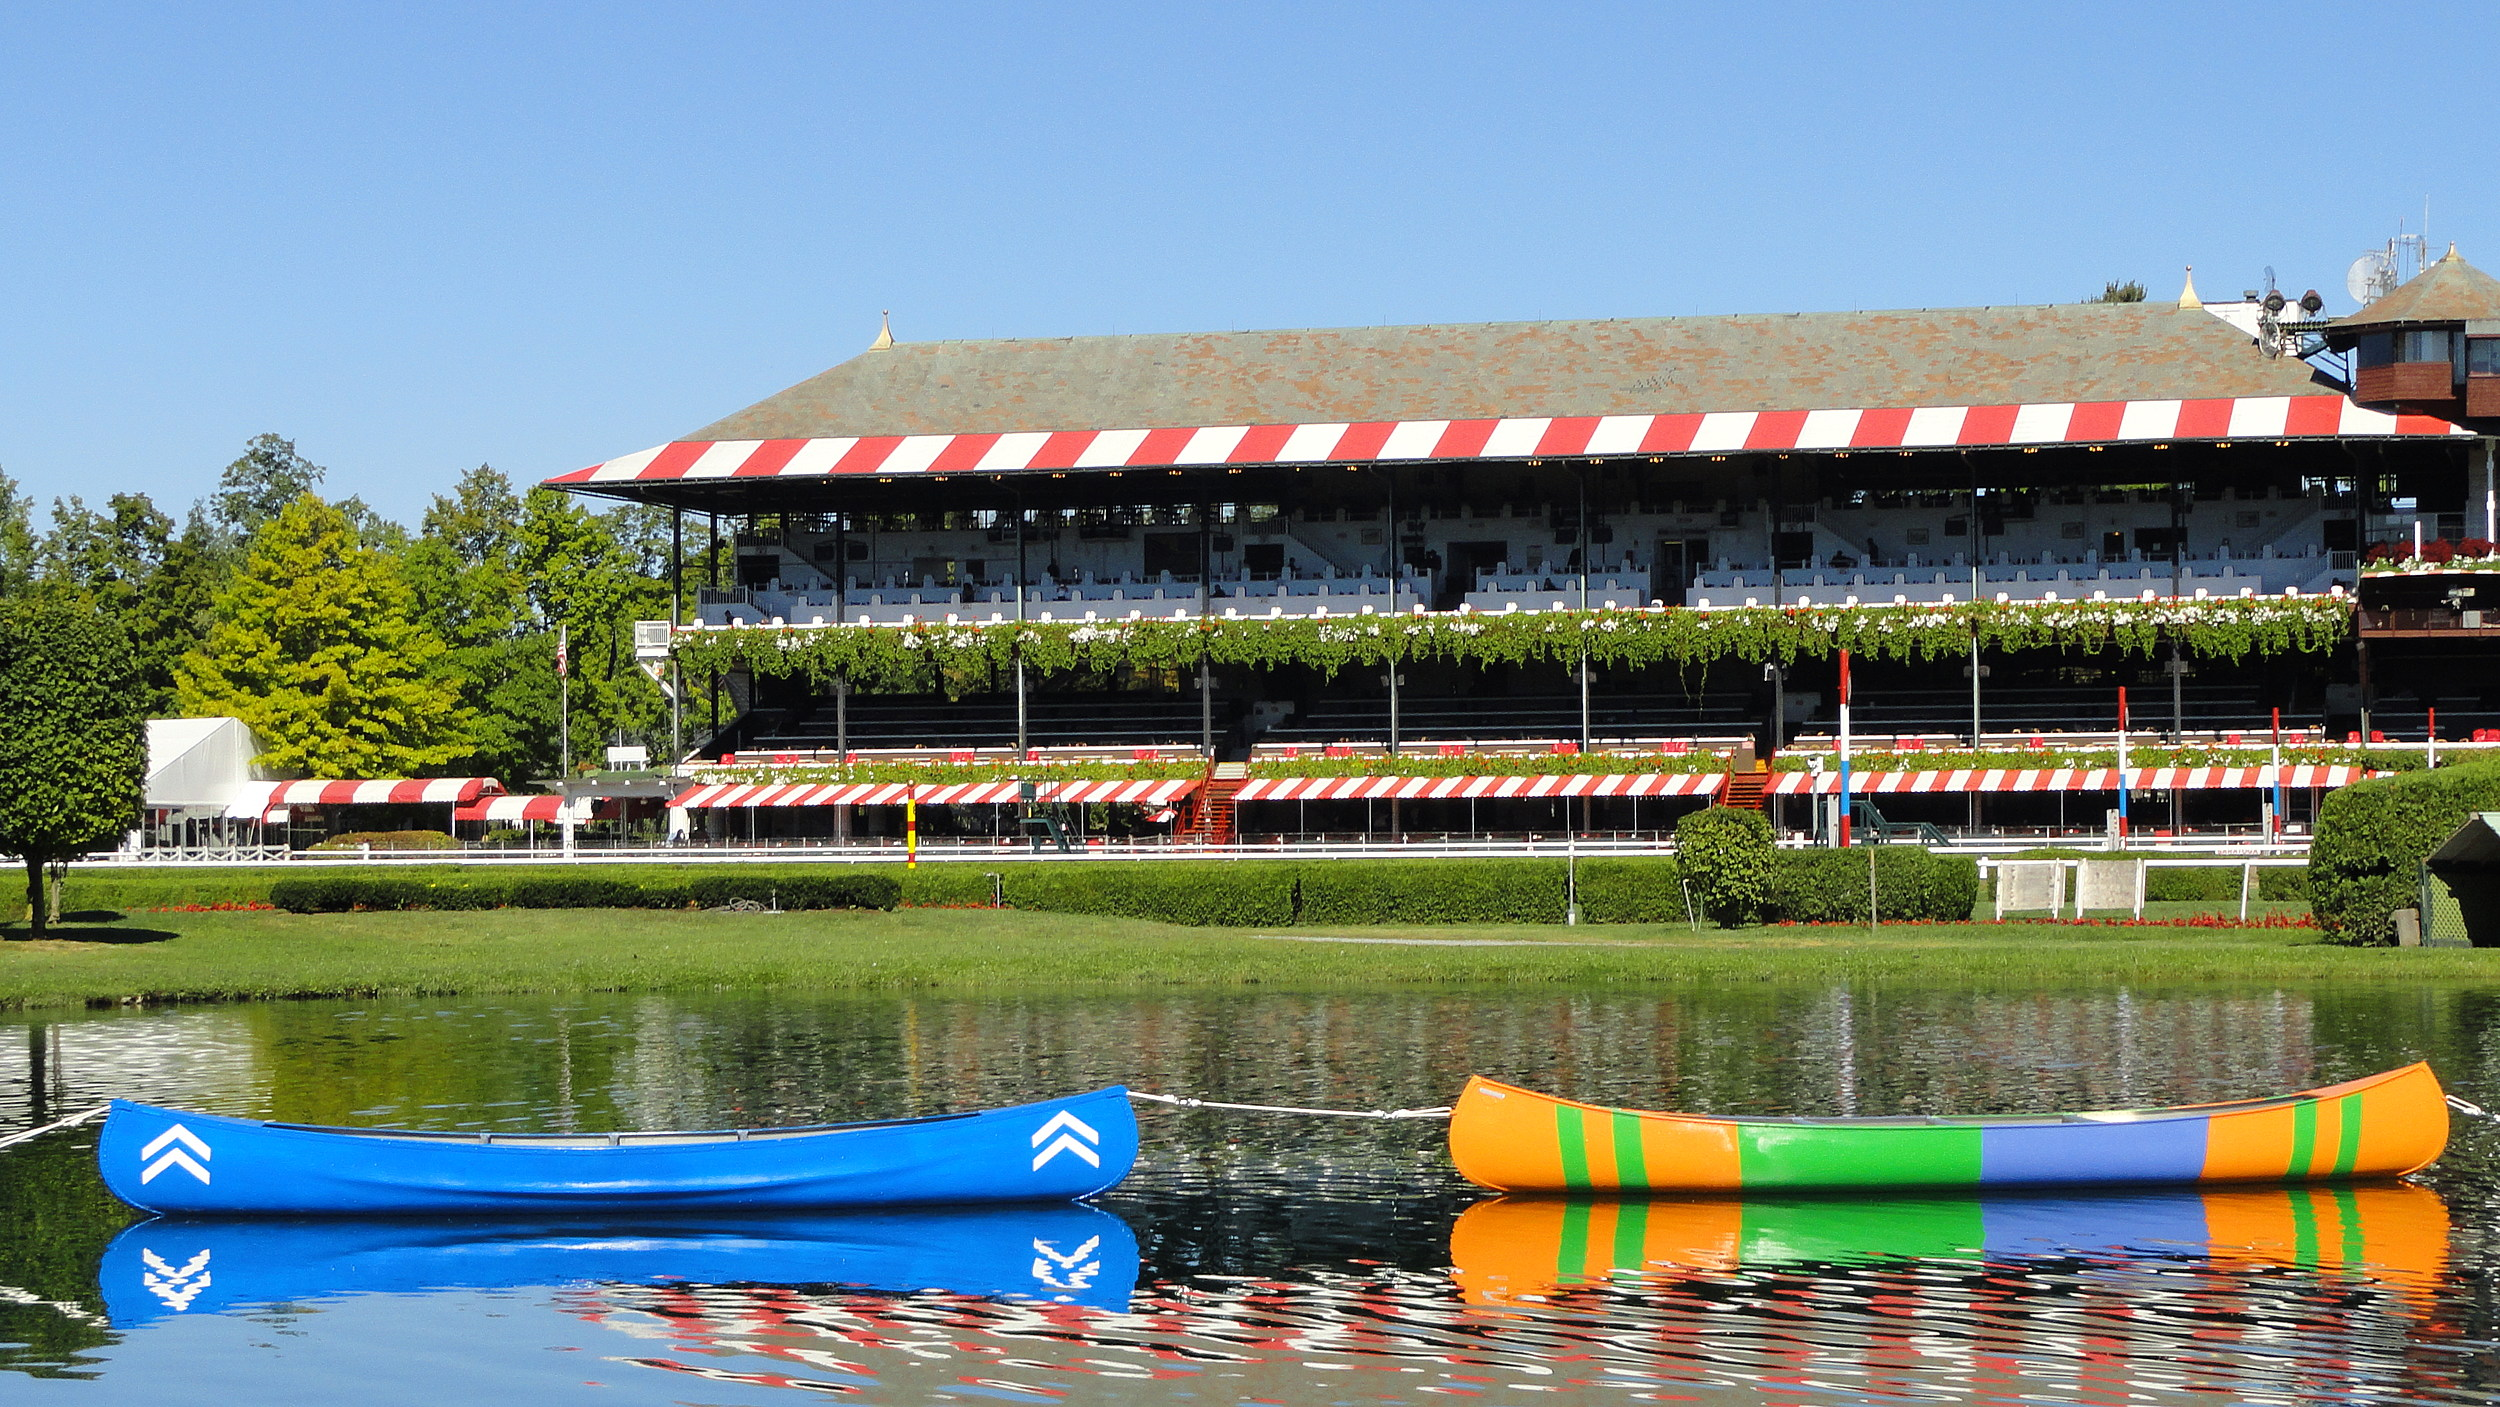 Travers Canoes Launched At Saratoga Race Course